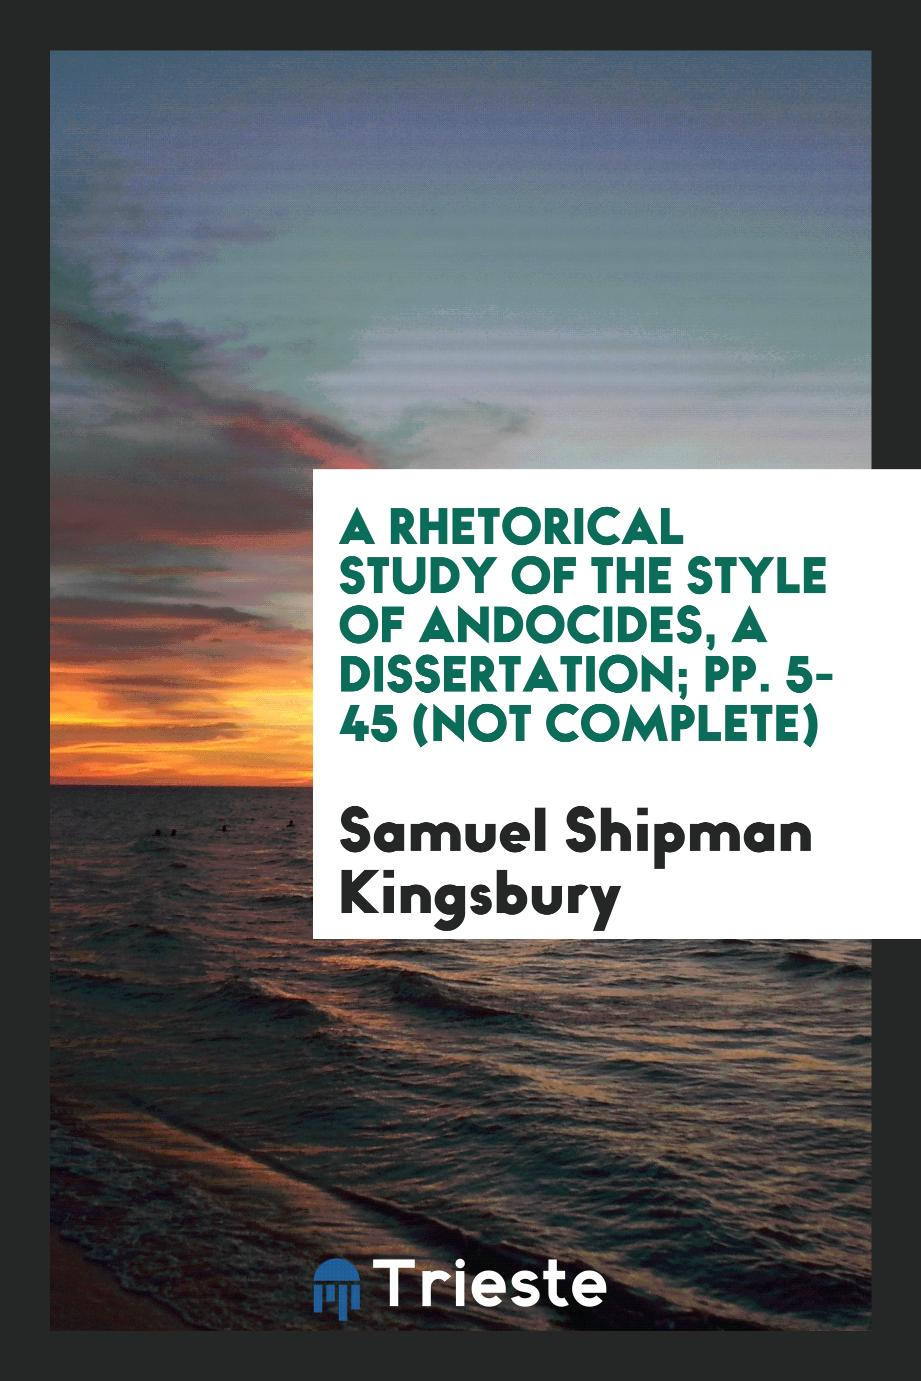 Samuel Shipman Kingsbury - A Rhetorical Study of the Style of Andocides, a dissertation; pp. 5-45 (not complete)